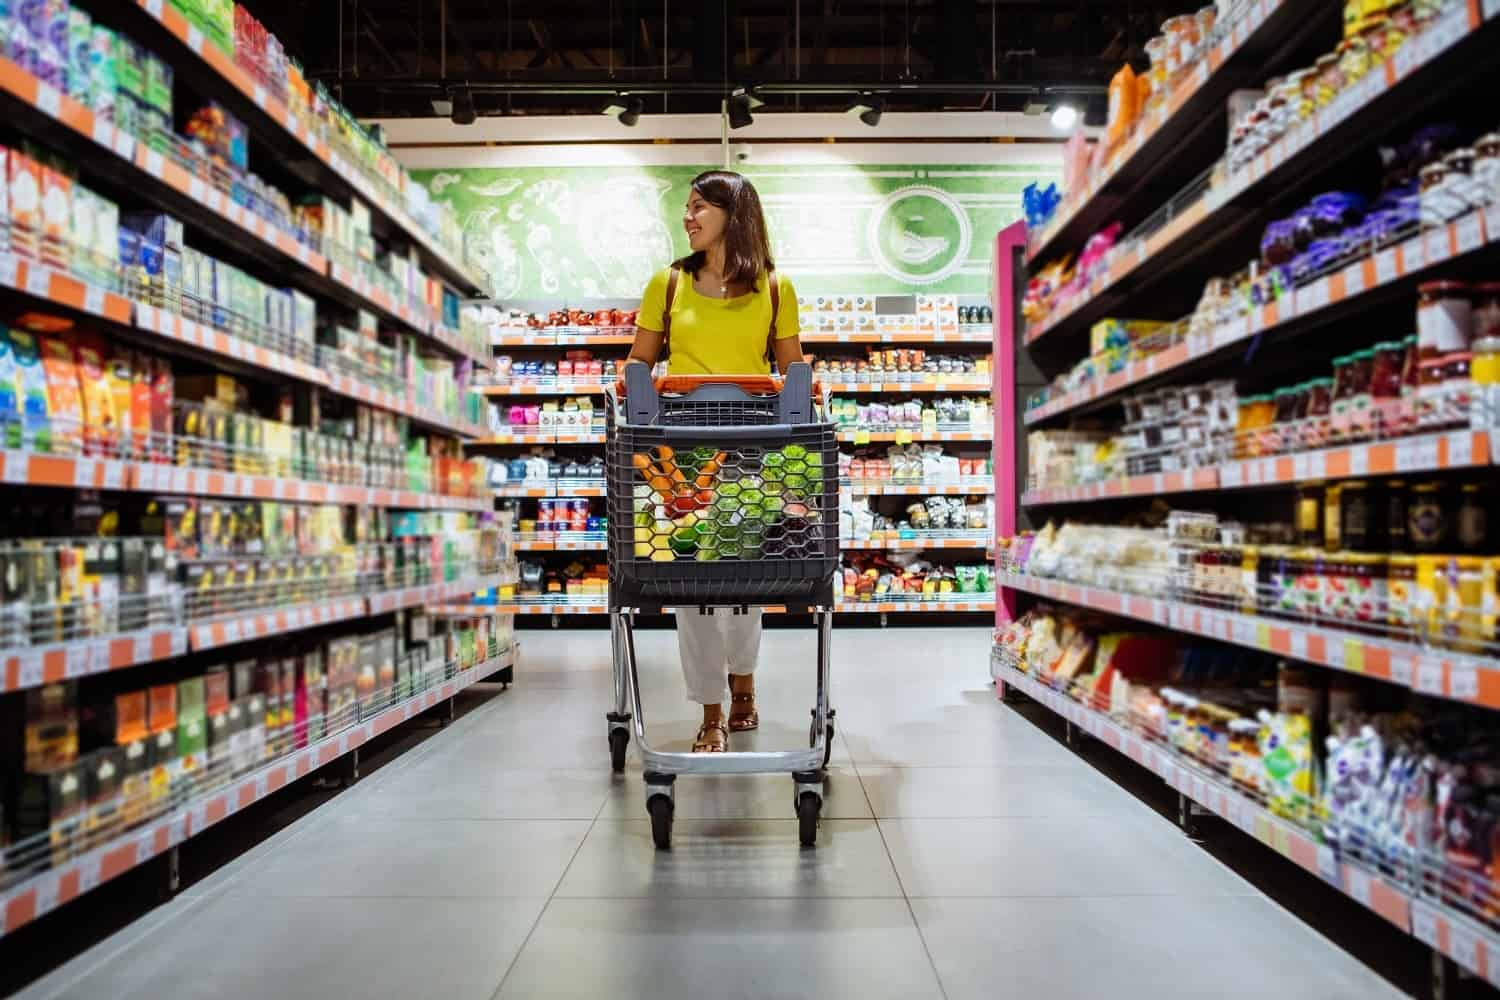 Shipt shopper pay: a grocery shopper in the middle of an aisle